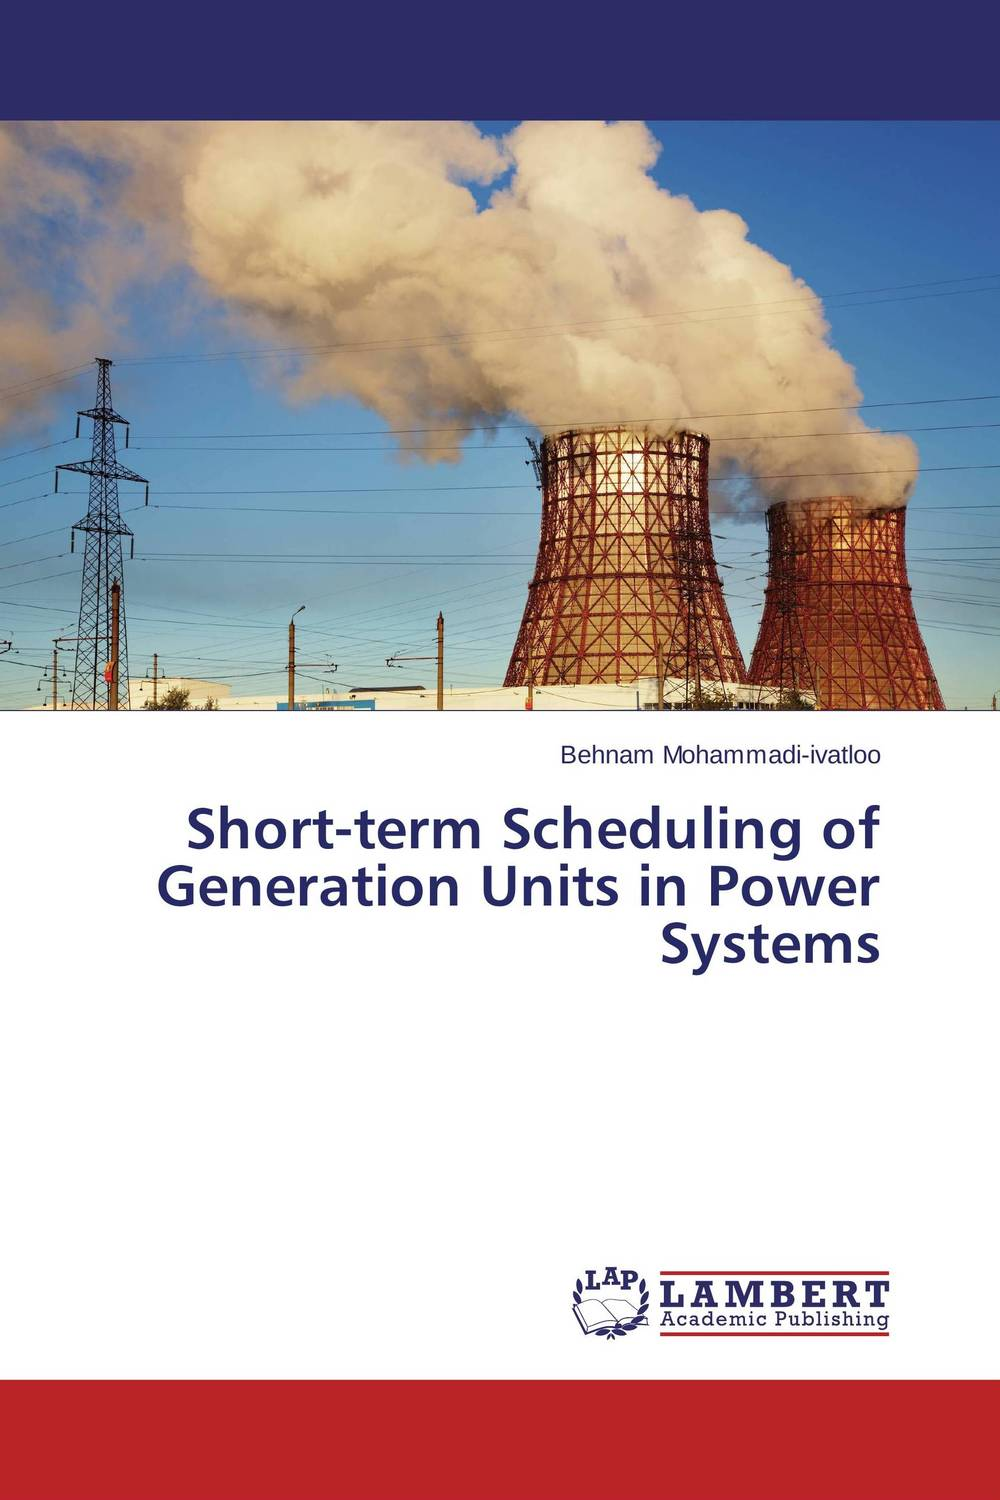 Short-term Scheduling of Generation Units in Power Systems optimization of hydro generation scheduling